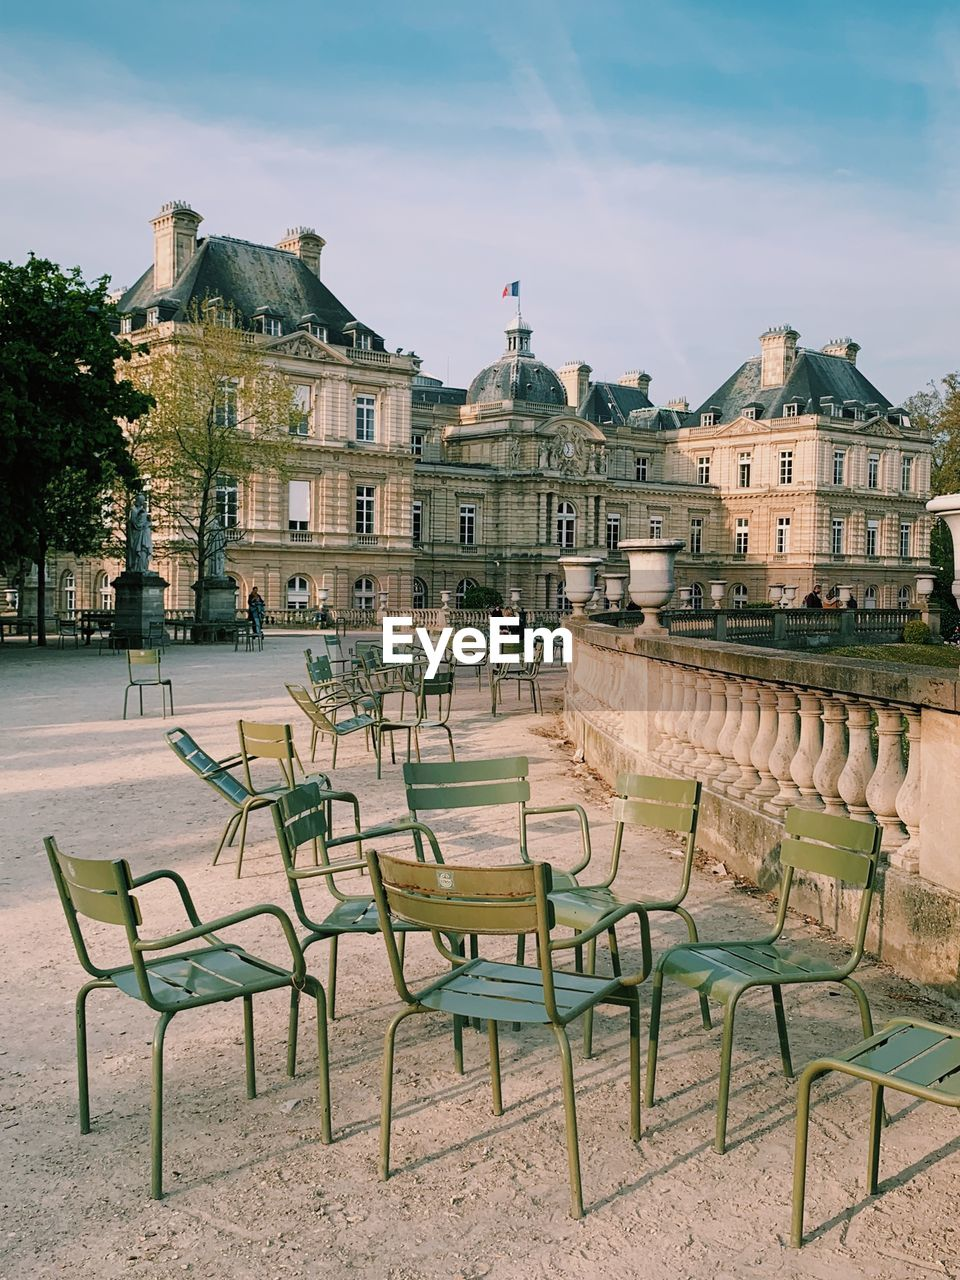 EMPTY CHAIRS AND TABLE BY BUILDINGS AGAINST SKY